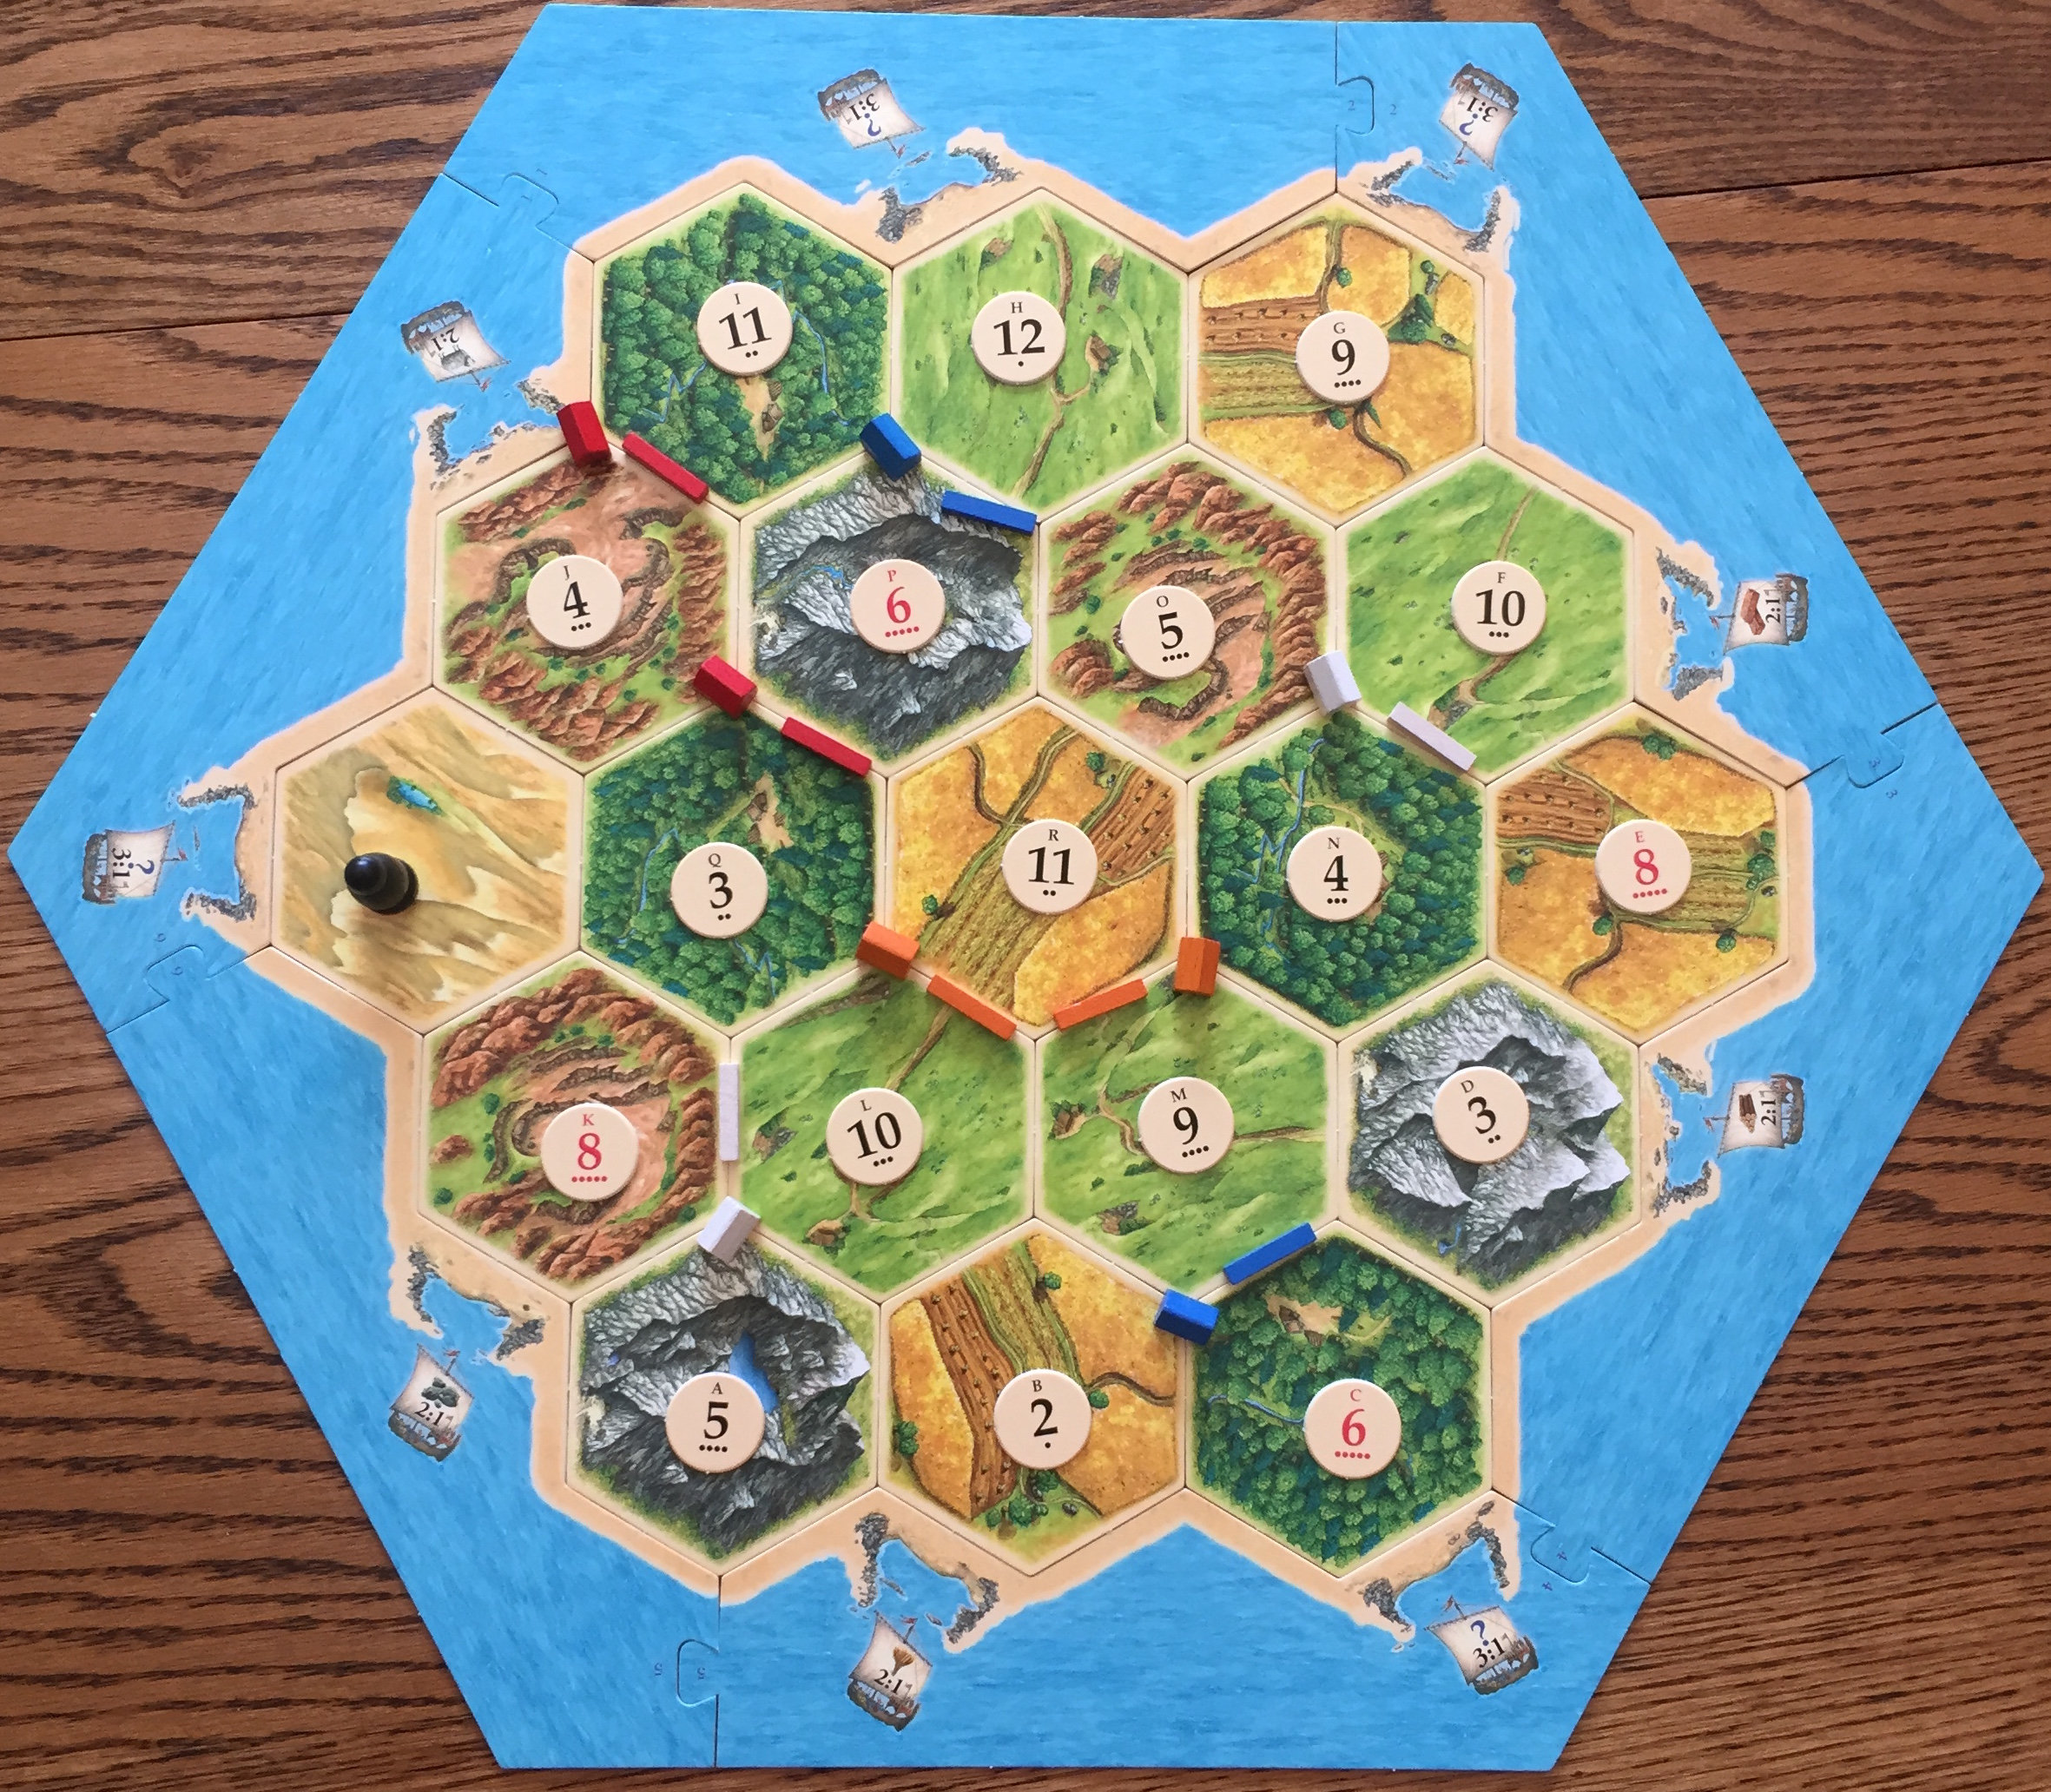 settlers of catan instructions and rules in arabic